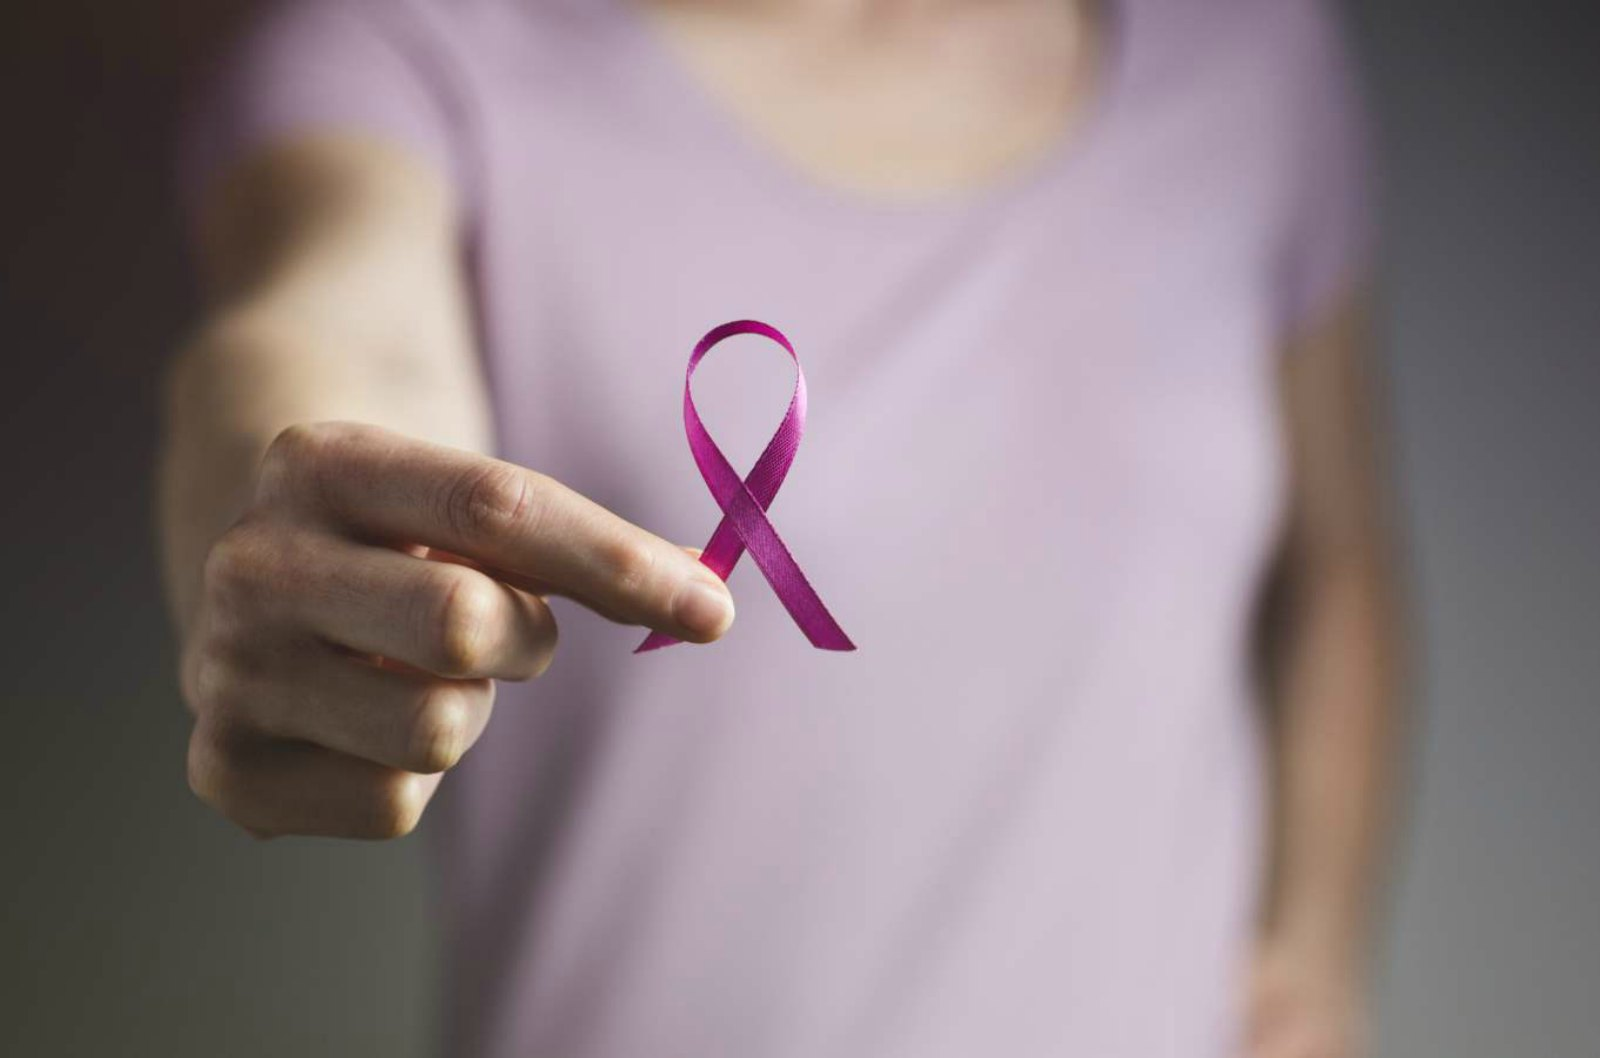 Promising Mayo Clinic Technology Joins the Fight Against Breast Cancer